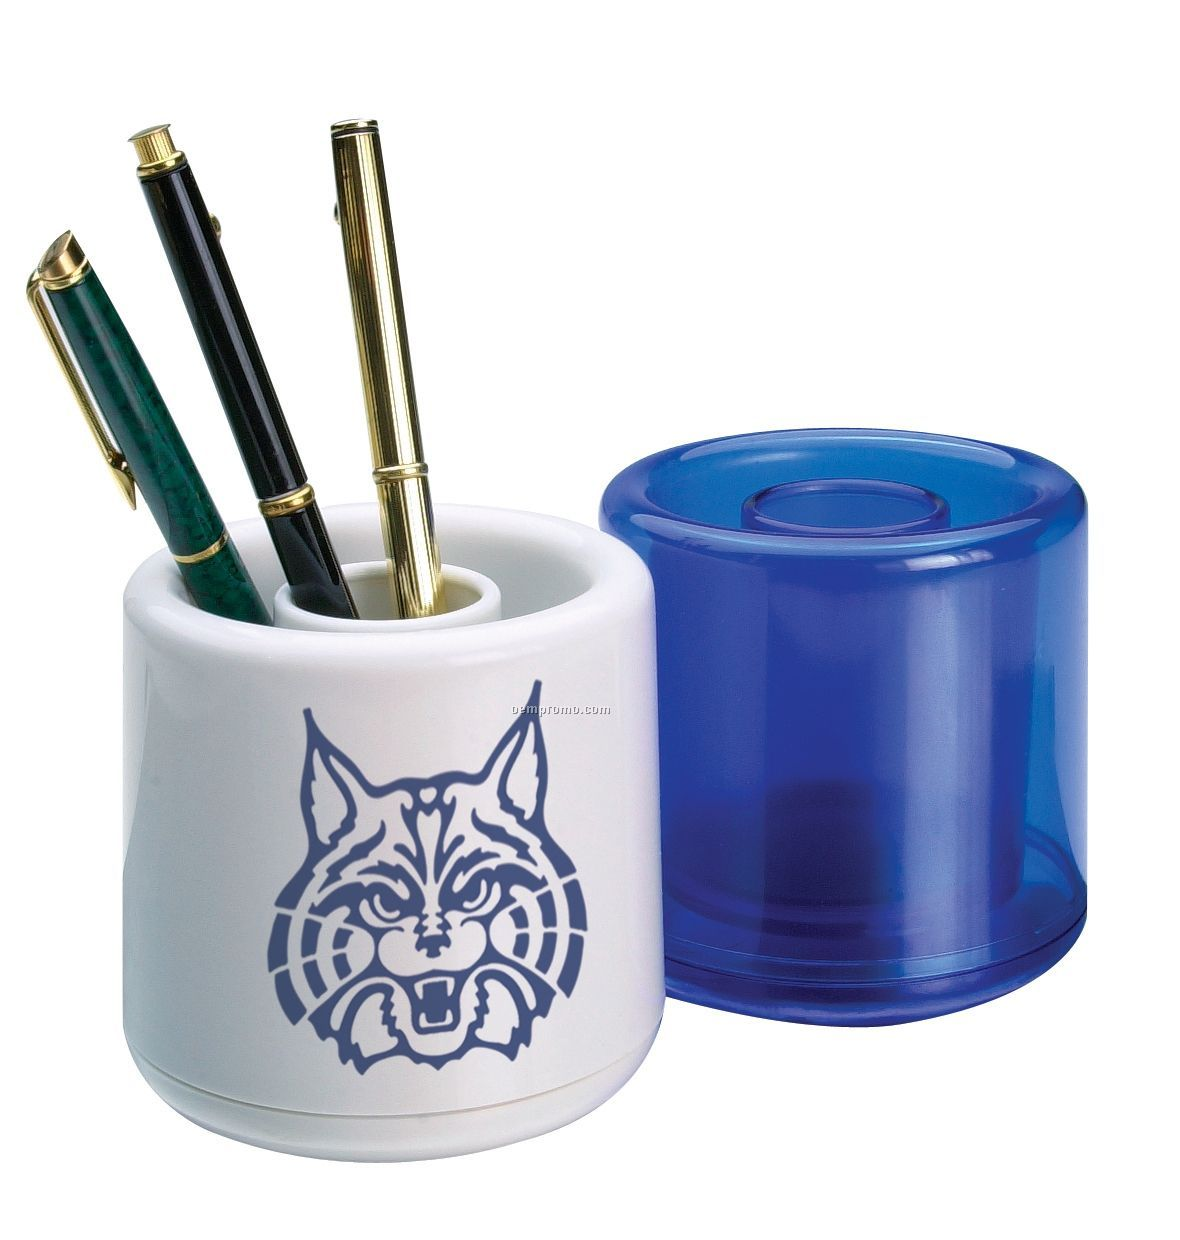 Pen Cup Holder Twin Barrel Pen Cup China Wholesale Twin Barrel Pen Cup